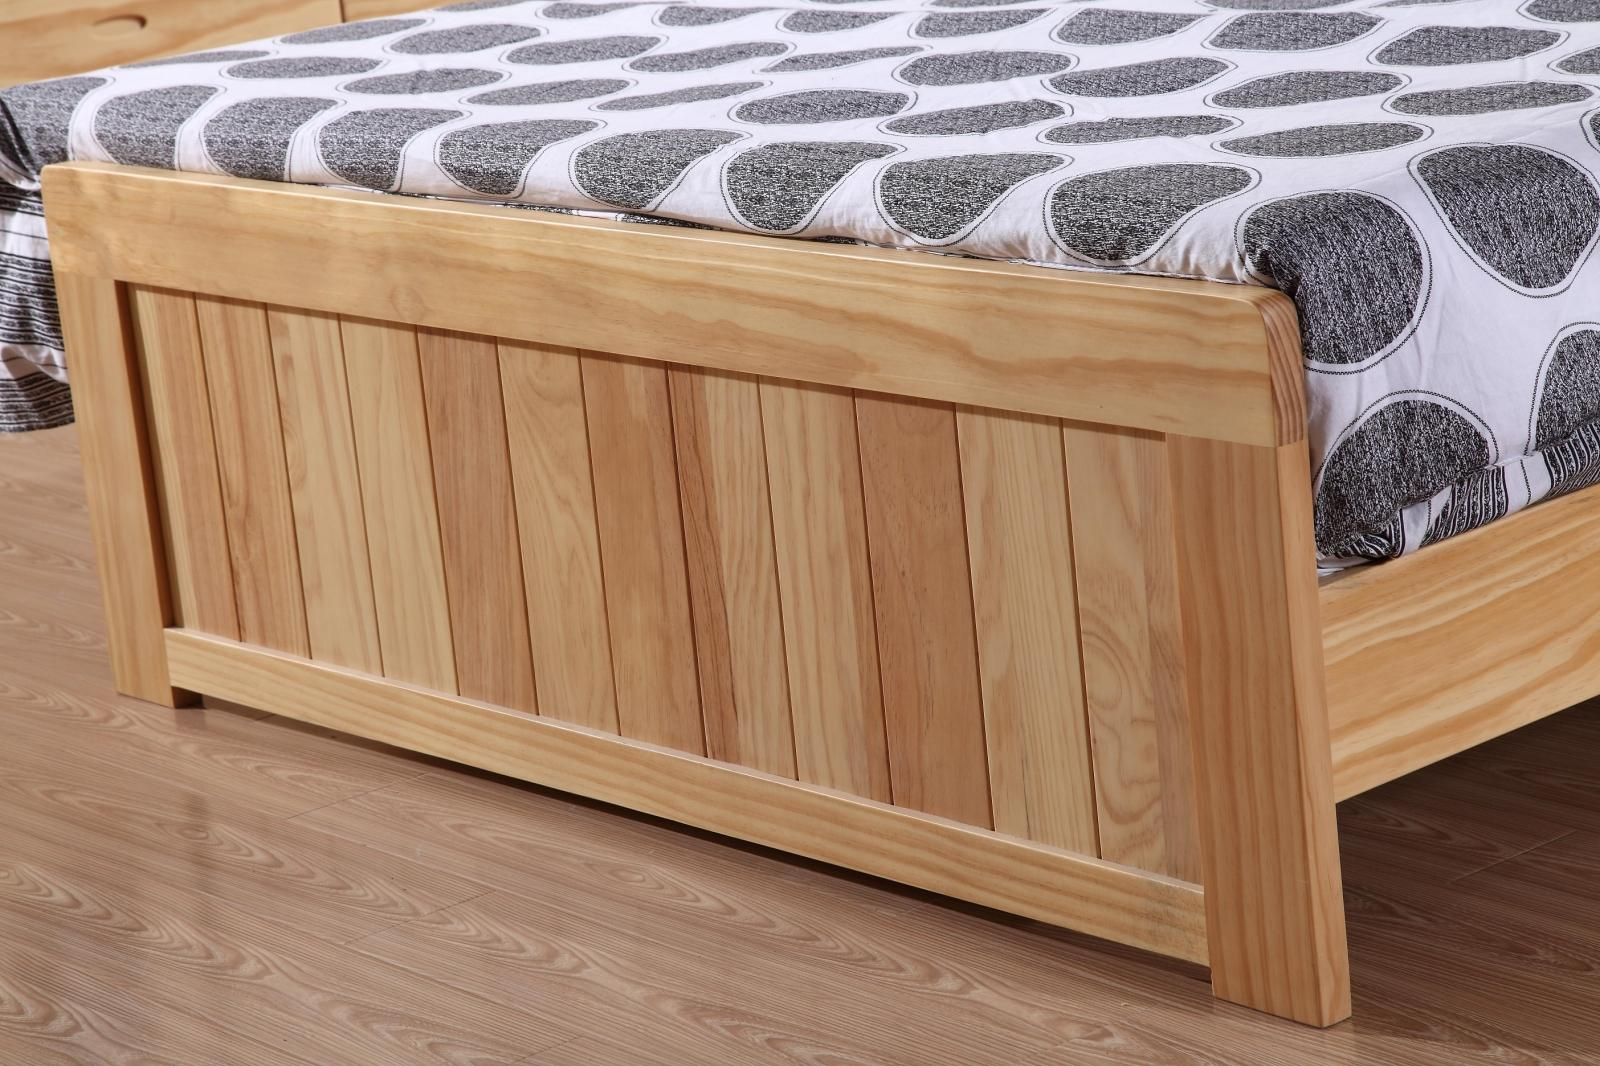 Counter New Zealand pine bookcase solid wood bedroom furniture child bed  can be pumped with high pressure tank in Children Furniture Sets from  Furniture on  Counter New Zealand pine bookcase solid wood bedroom furniture  . Good Quality Bedroom Furniture Nz. Home Design Ideas